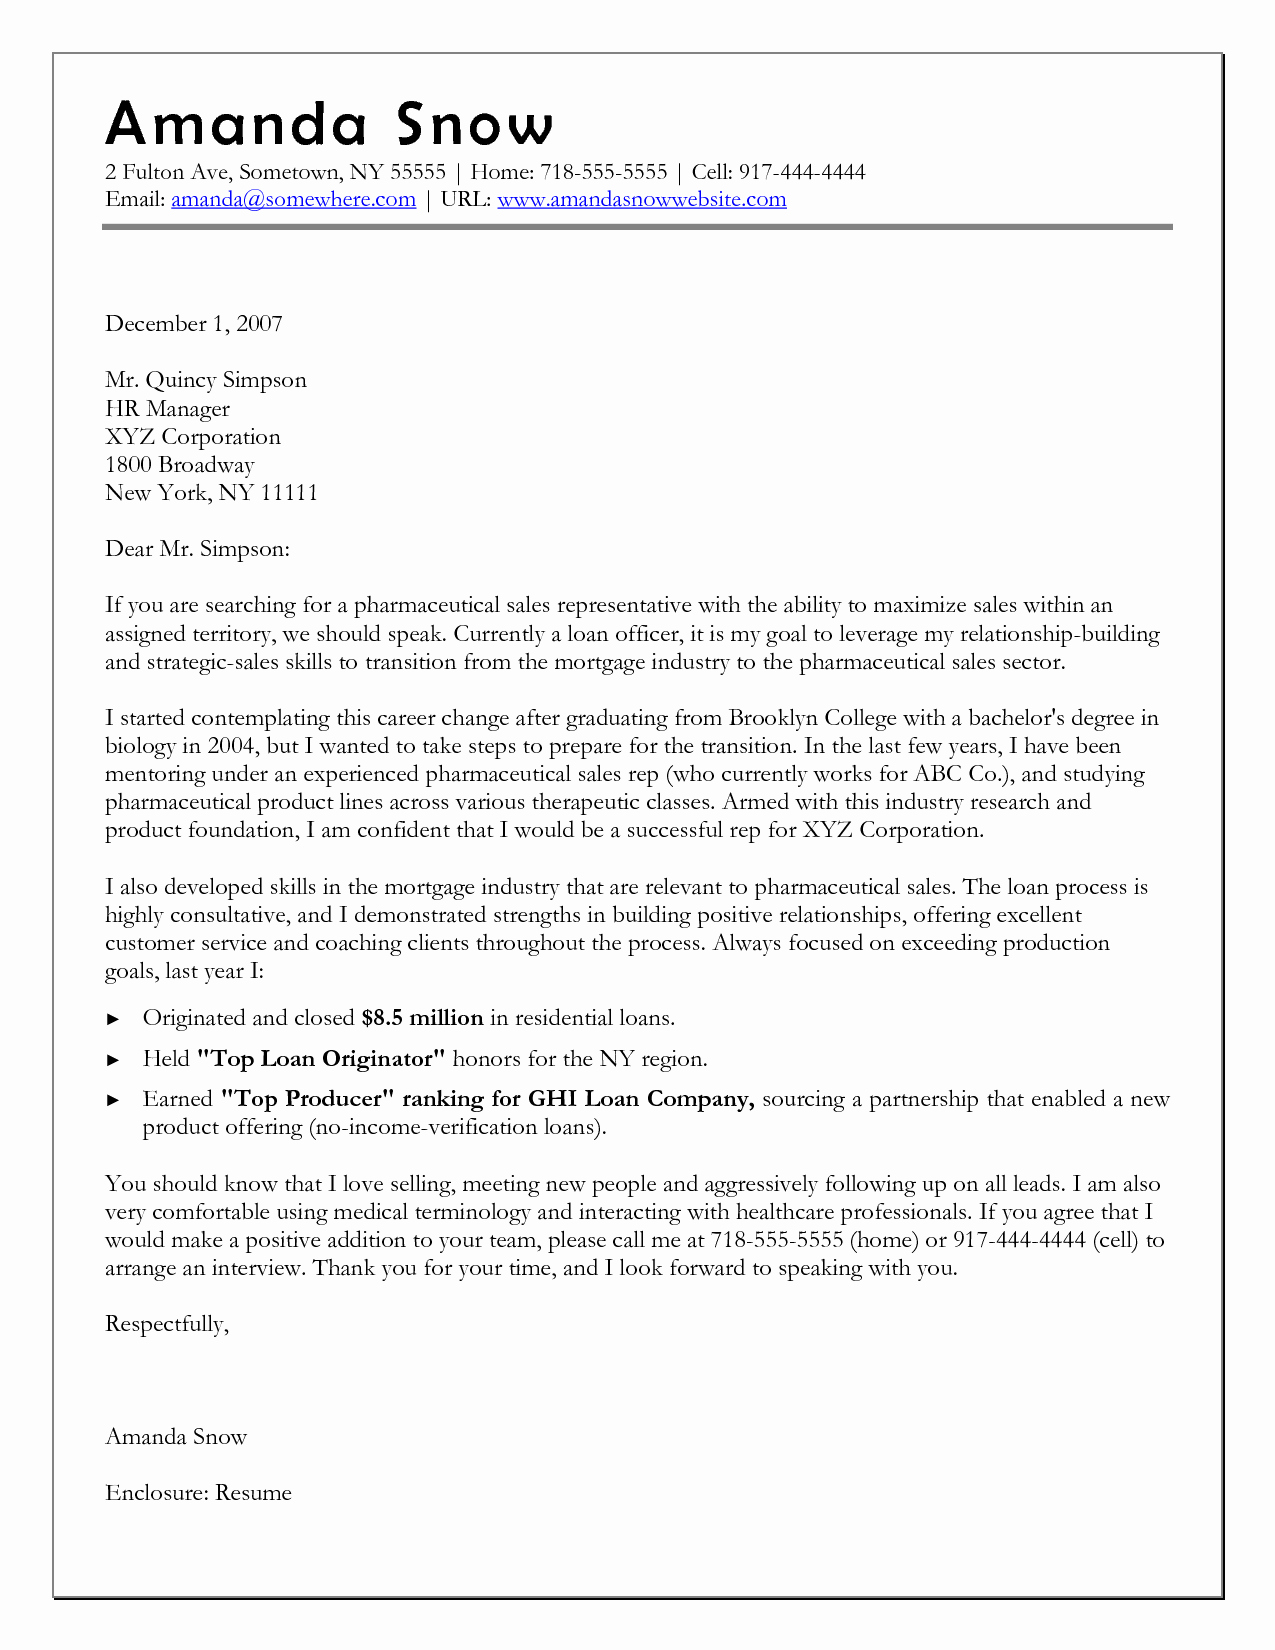 Cover Letter Career Change Best Of Cover Letter Template when Changing Careers